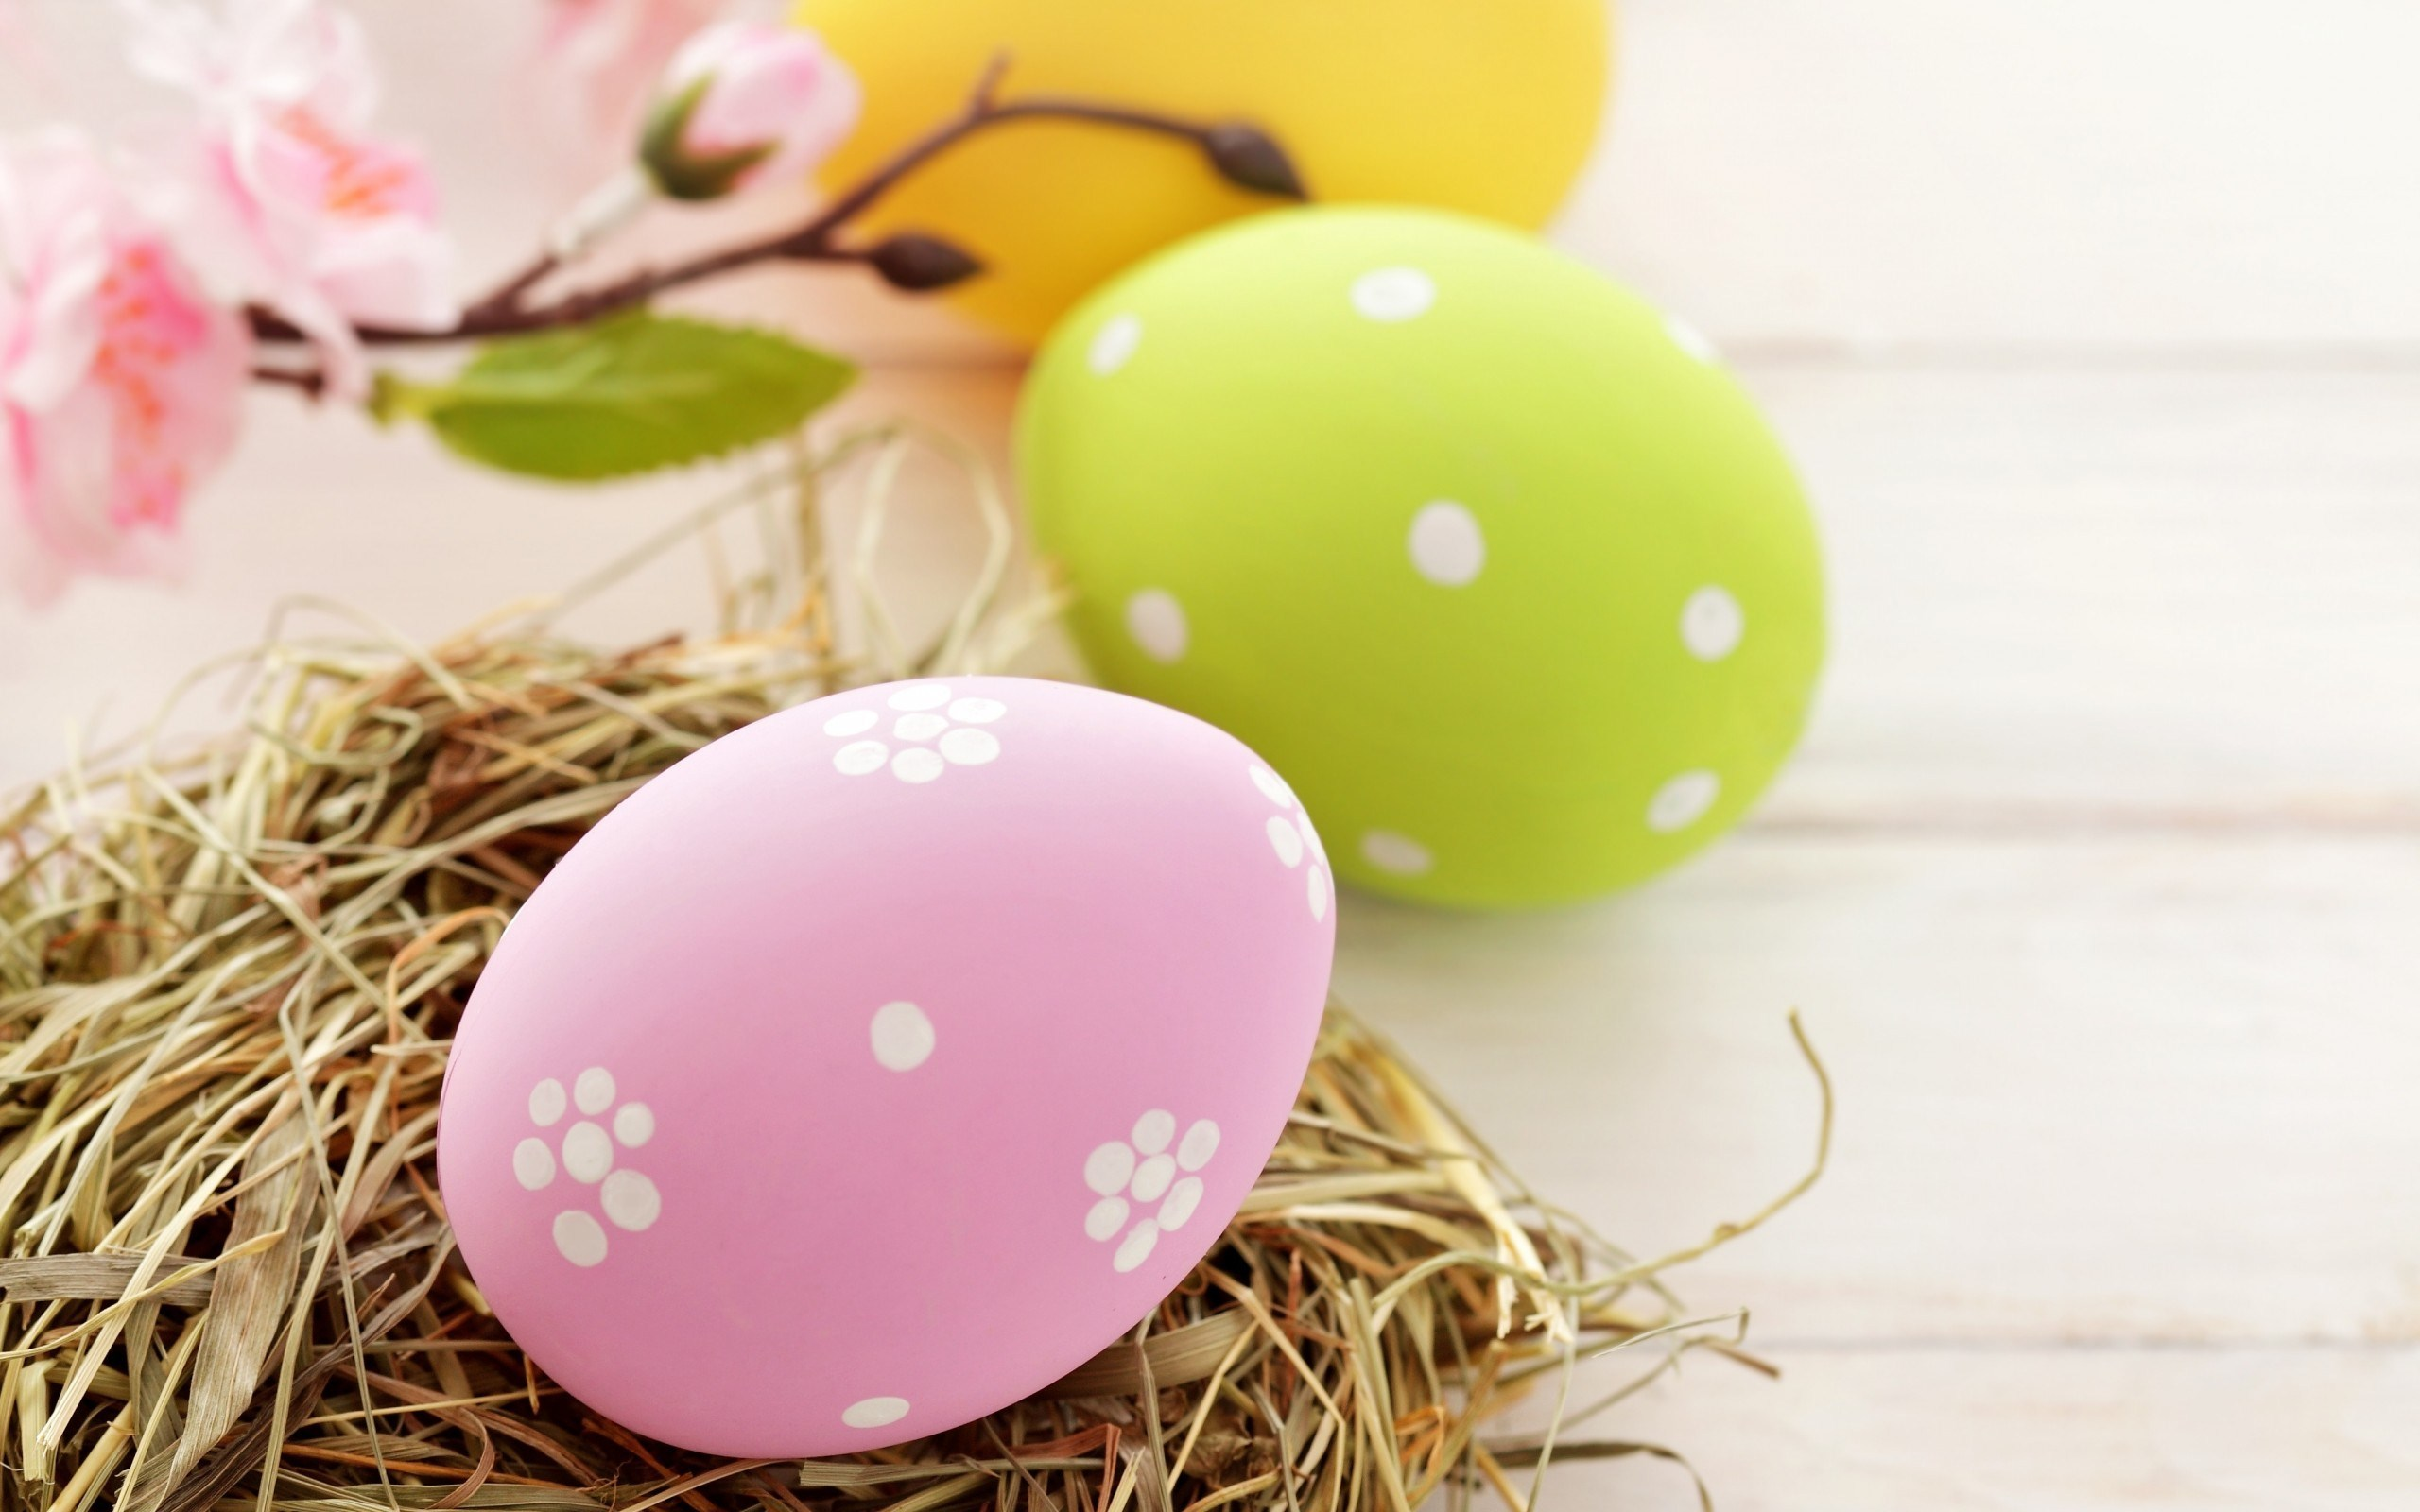 Easter Sunday Eggs Design Images Colorful Pictures Pics Hd 2560x1600